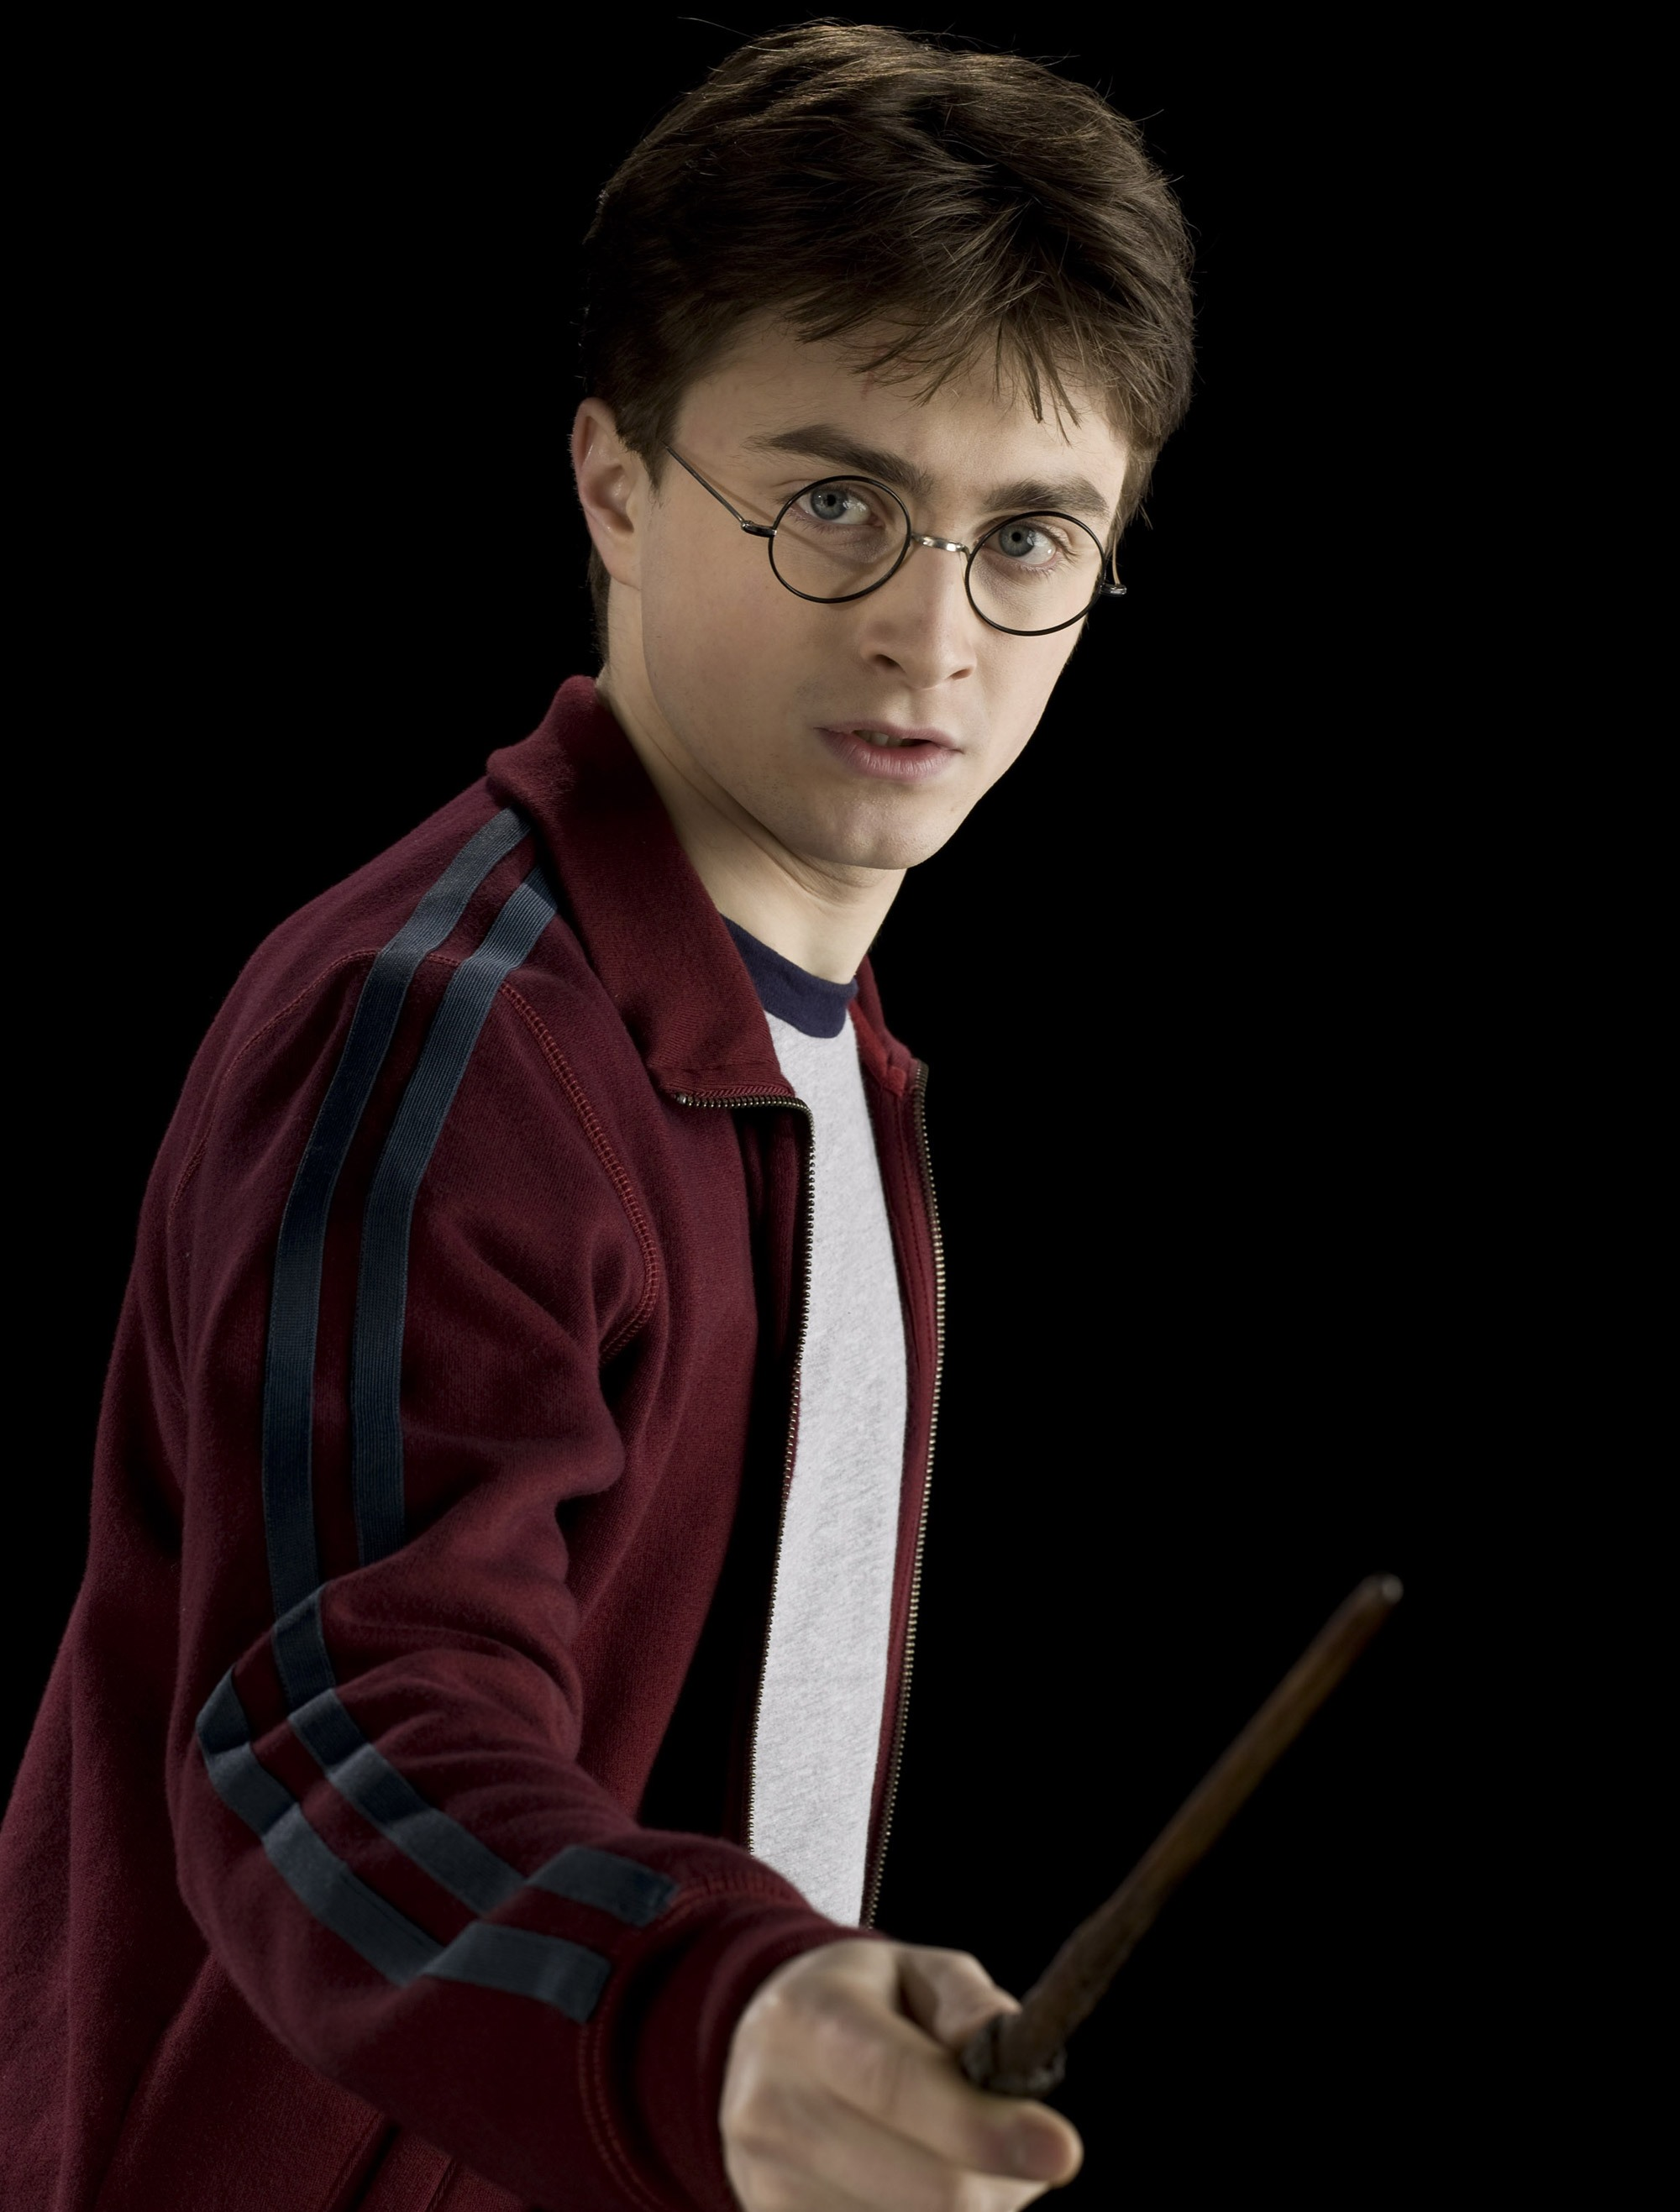 HBPf-Promo UpperBody HarryPotterWithWand.jpg